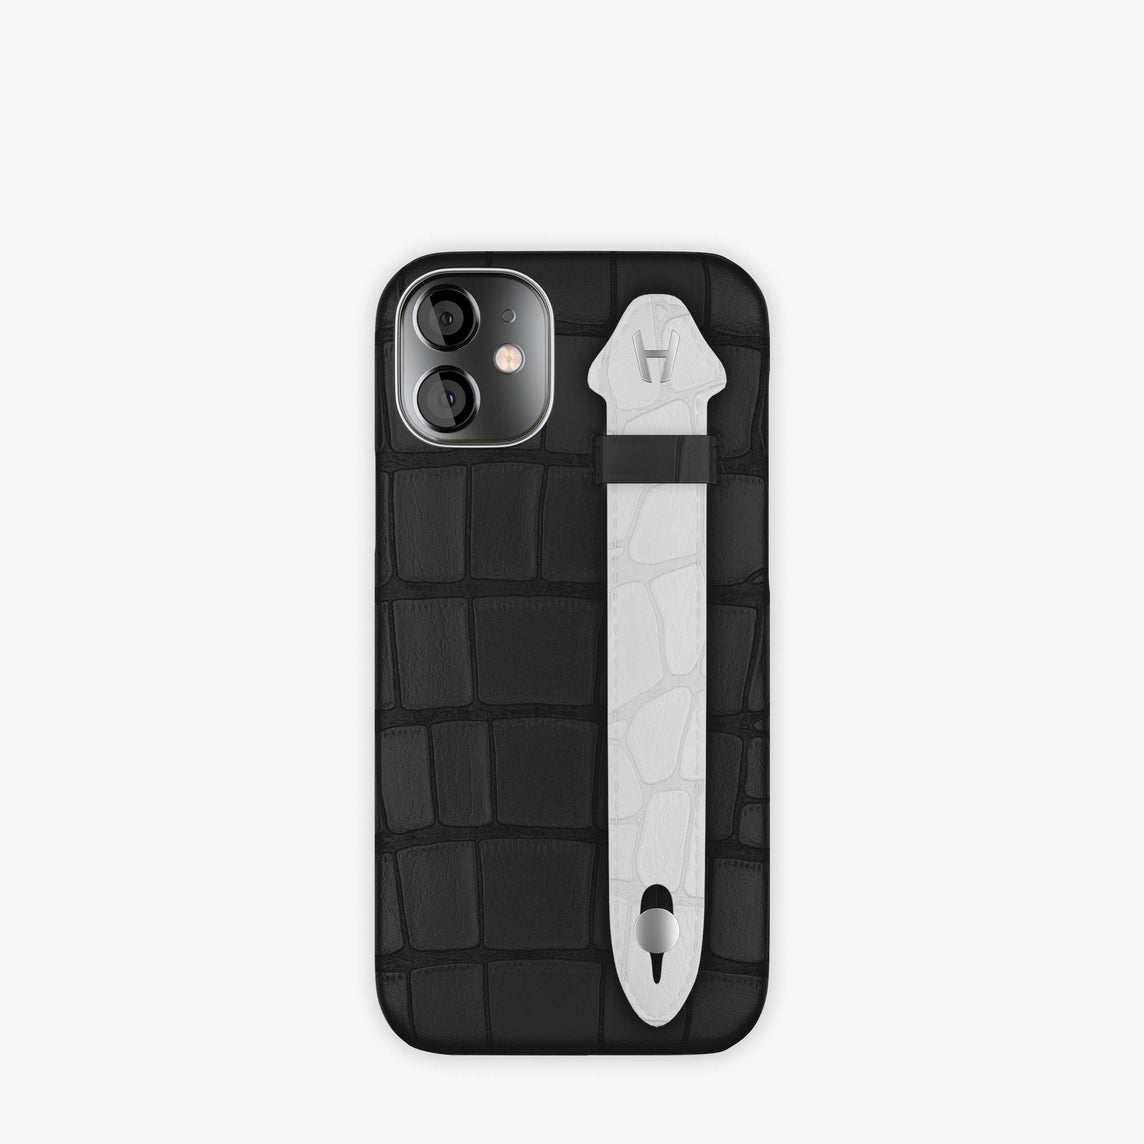 Alligator Side Finger Case iPhone 12 Mini | Black/White -Stainless Steel